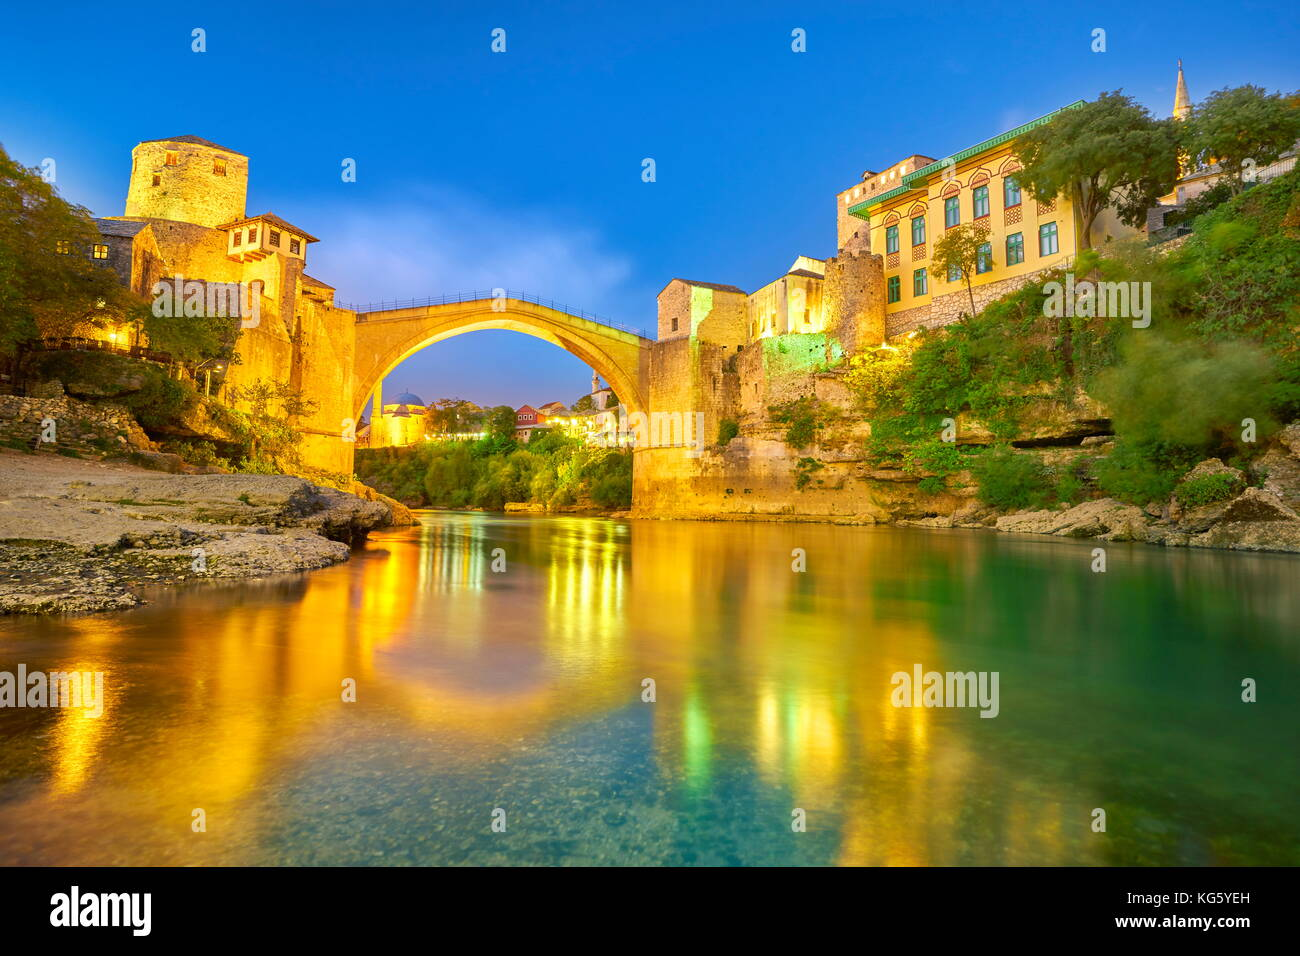 Mostar, Bosnia and Herzegovina - evening view at Stari Most or Old Bridge, Neretva River - Stock Image